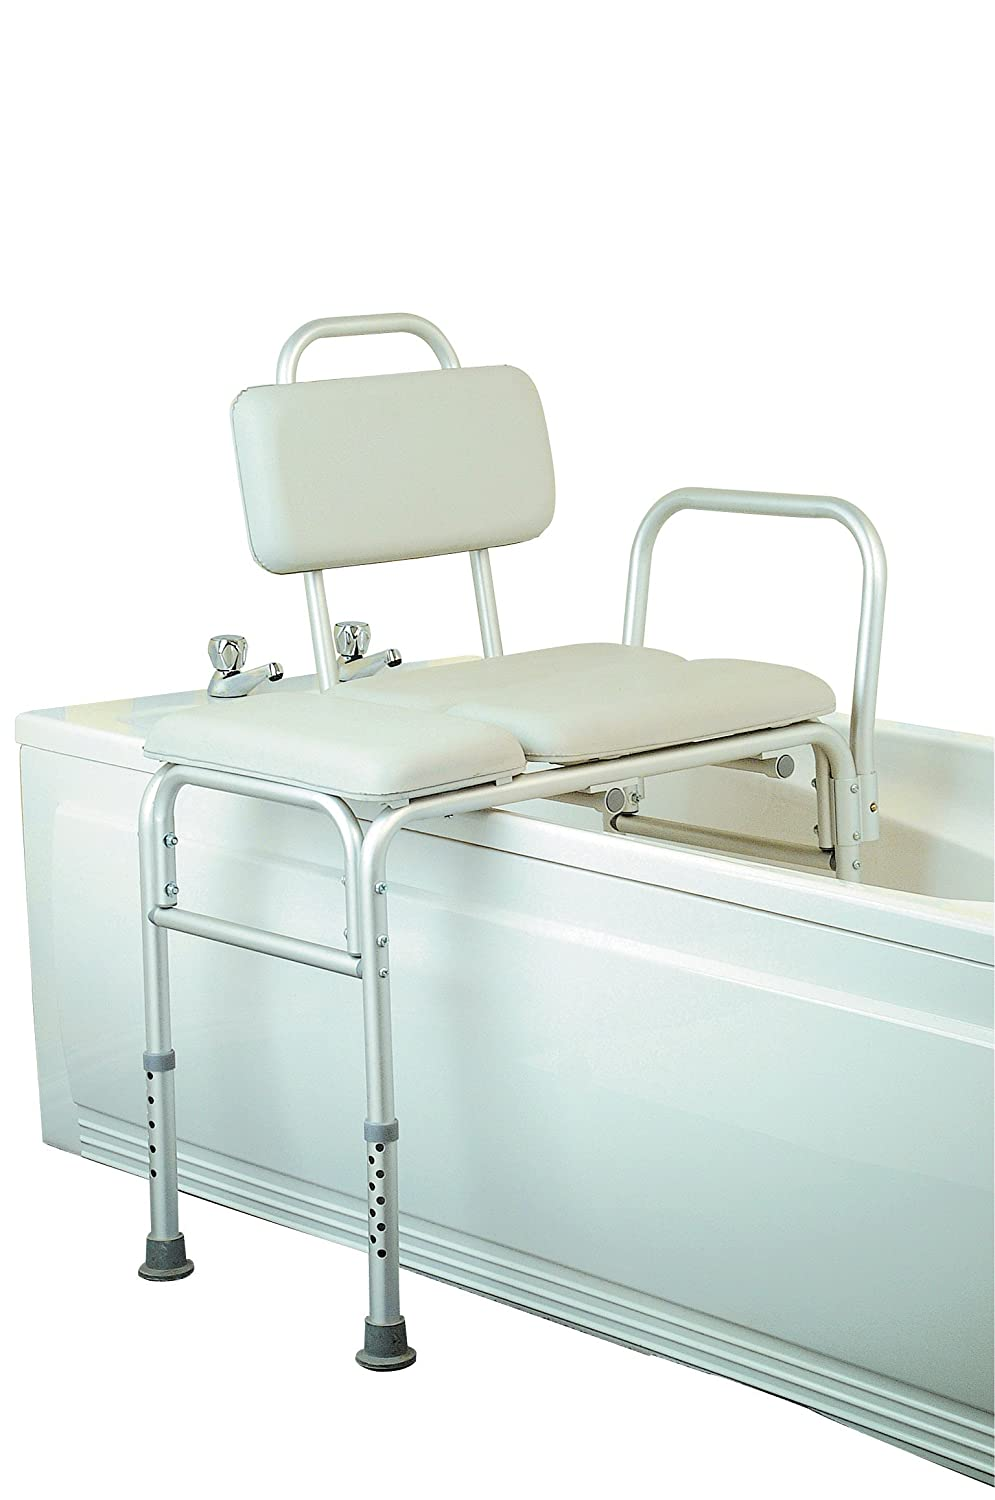 chair rehab bench specials width md mor aluminum bl shower transfer commode medical cap sales euro style chairs internal